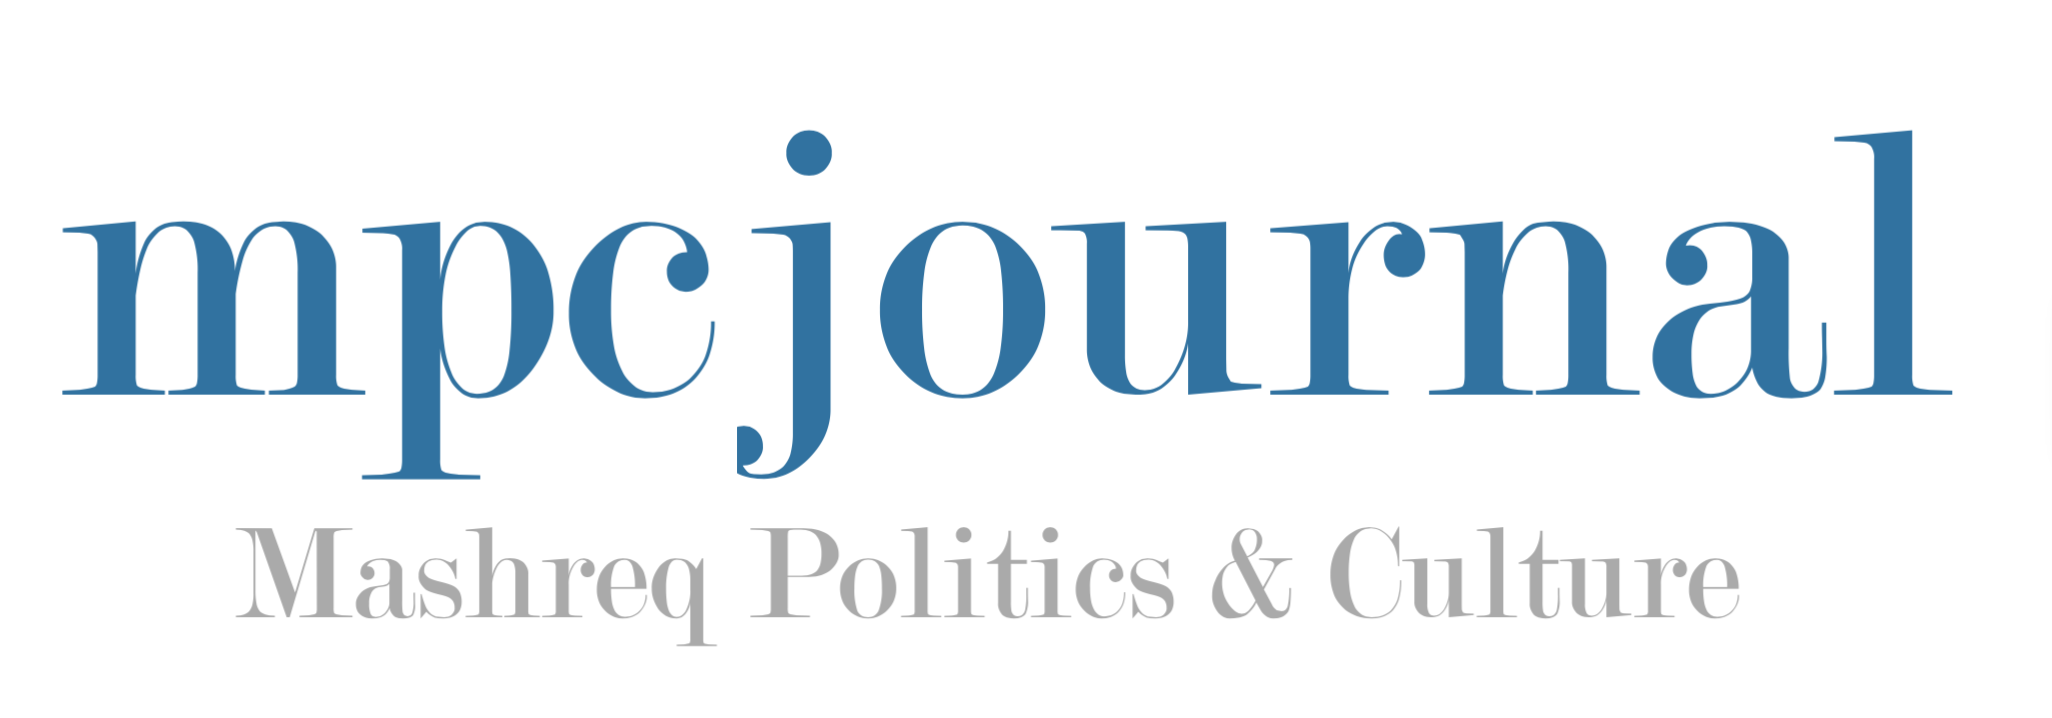 Mashreq Politics & Culture Journal